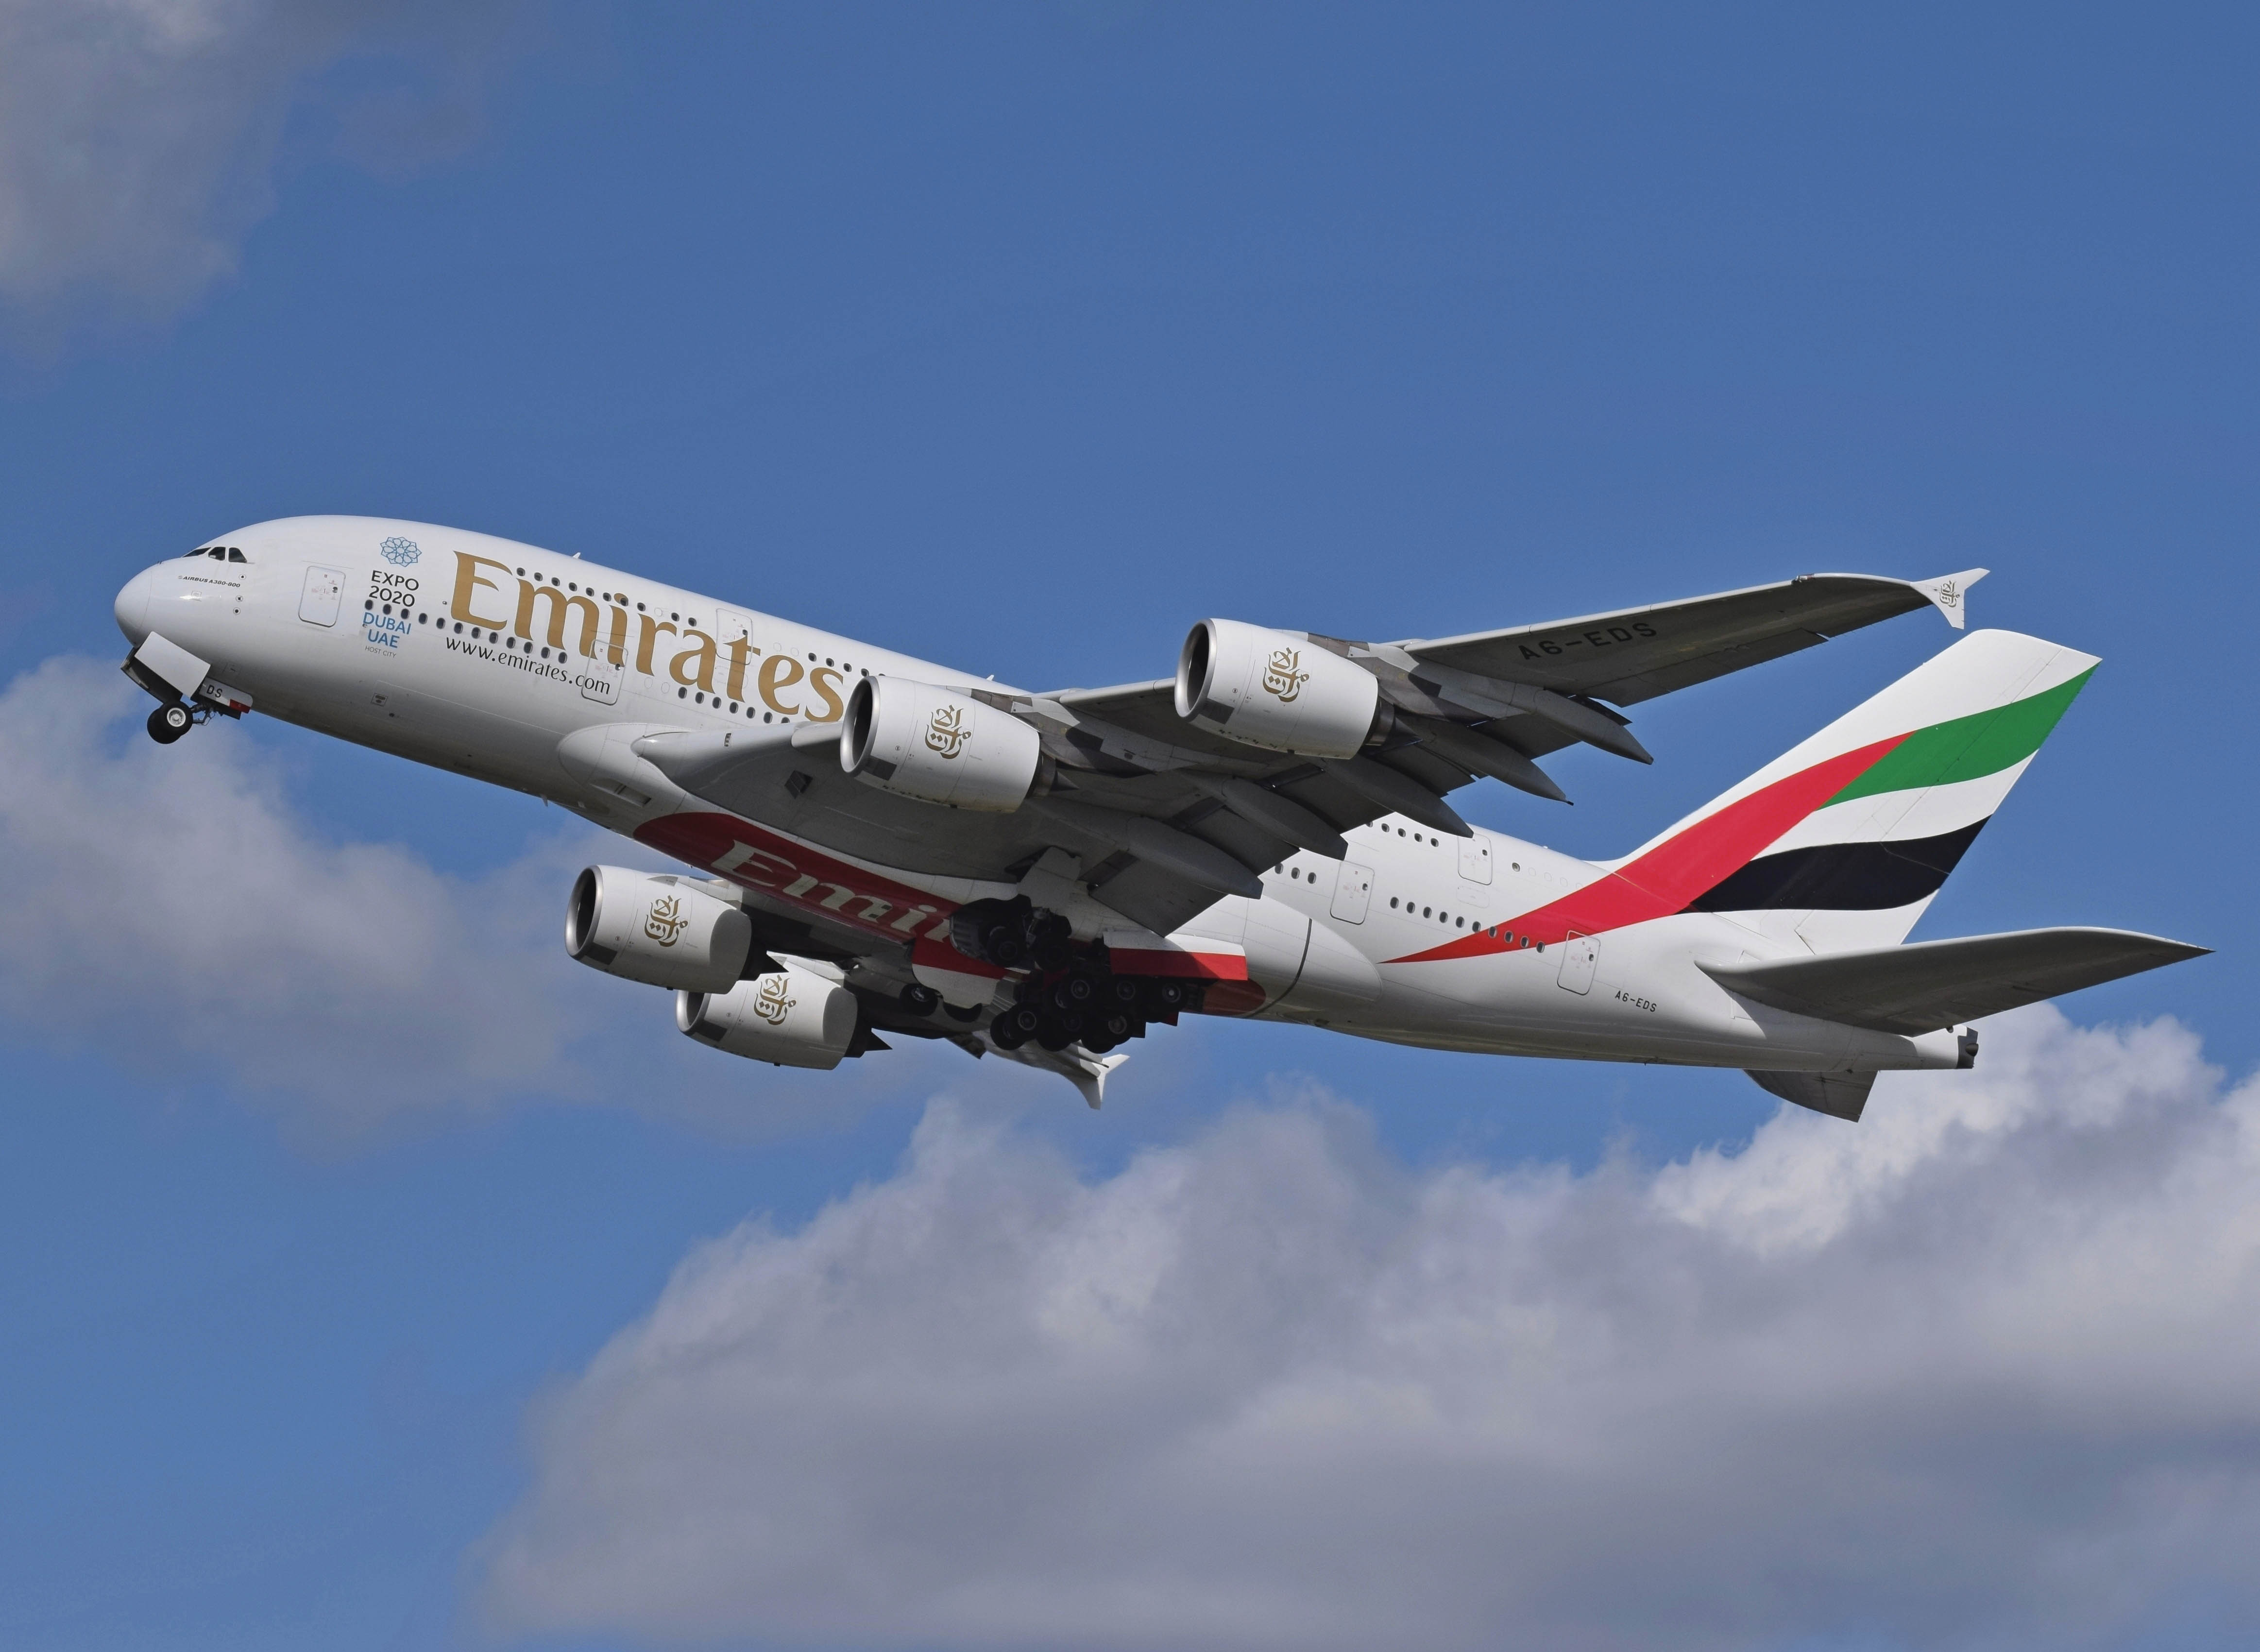 File:Emirates Airbus A380 (A6-EDS) departs London Heathrow